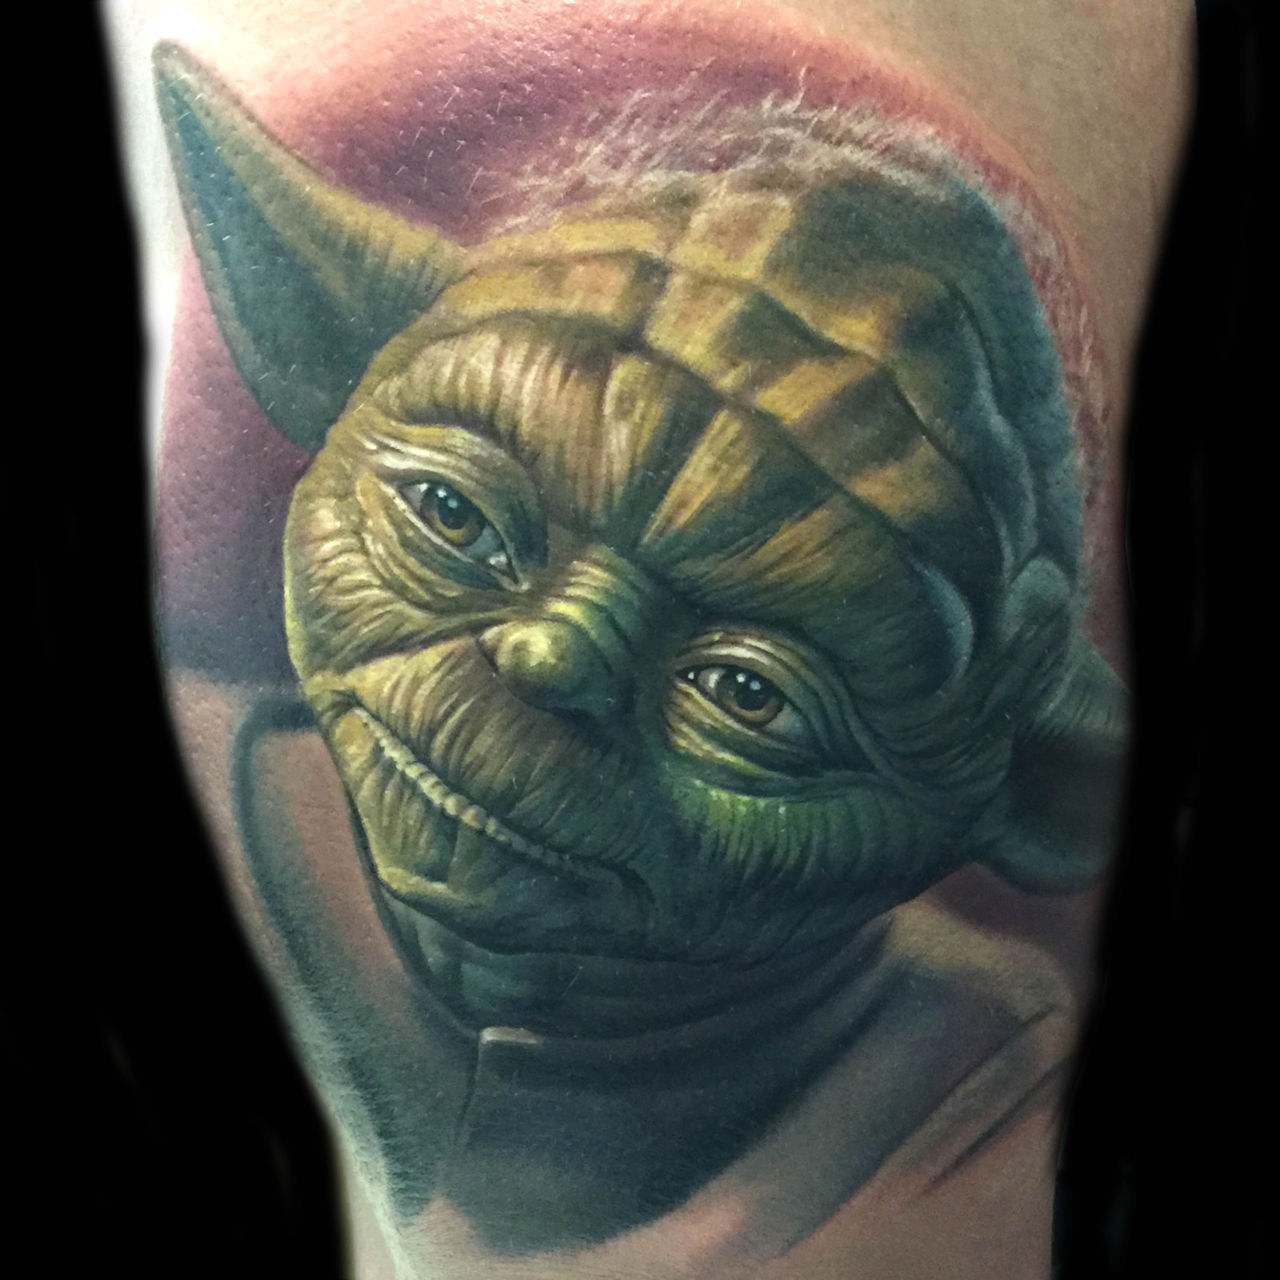 Goa Tattoo Moksha: is he still alive in 'Star Wars The Last Jedi'?